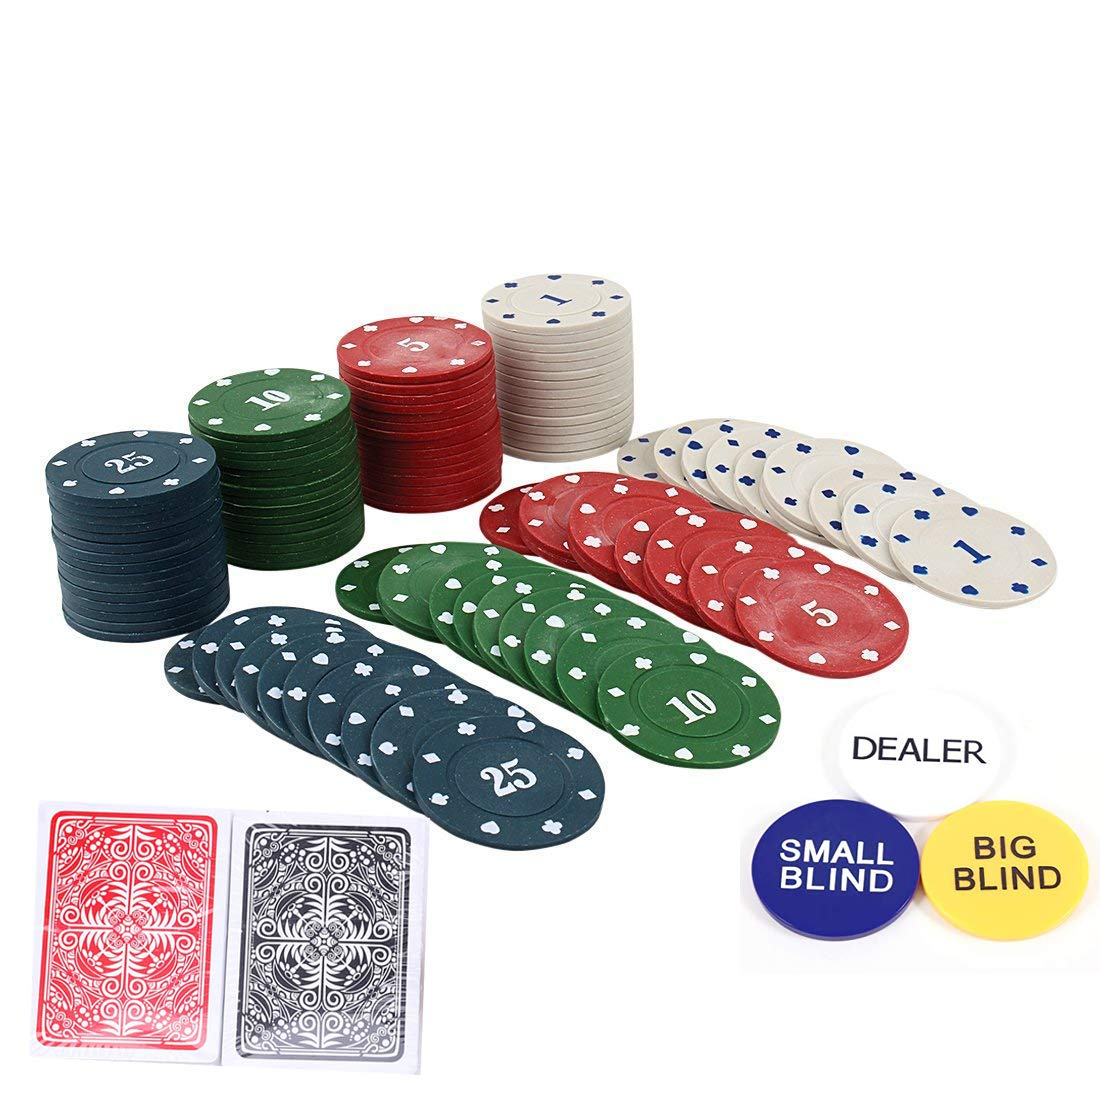 Buy Styleys Round Plastic Poker Chips Set 100 Plastic Online At Low Prices In India Amazon In